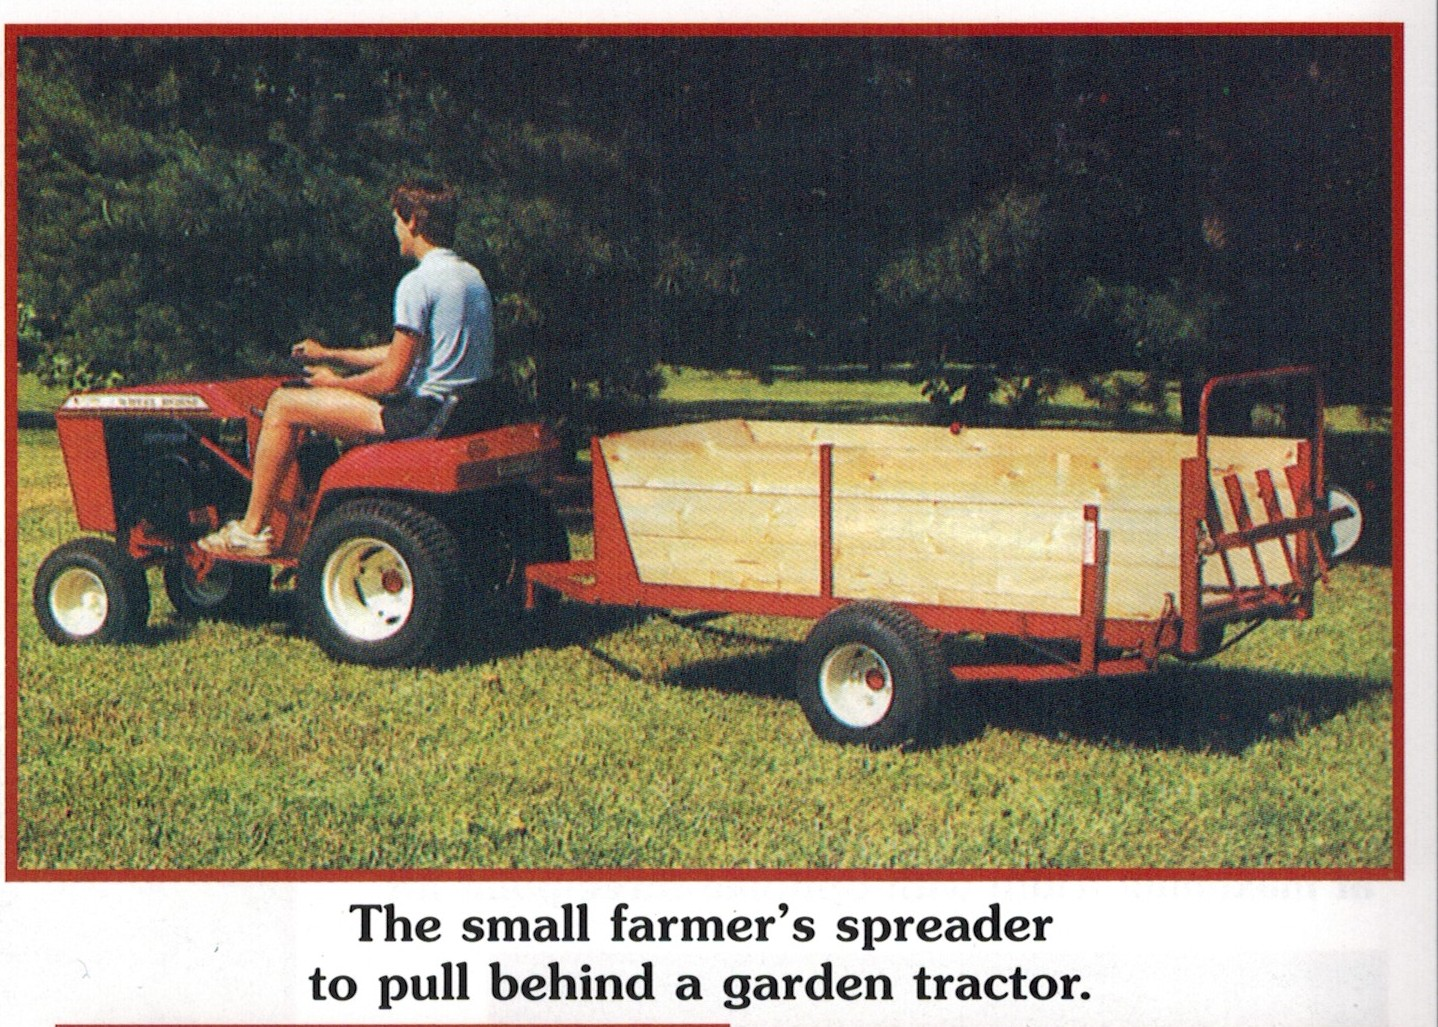 Model 600 Estate Mighty Spreader